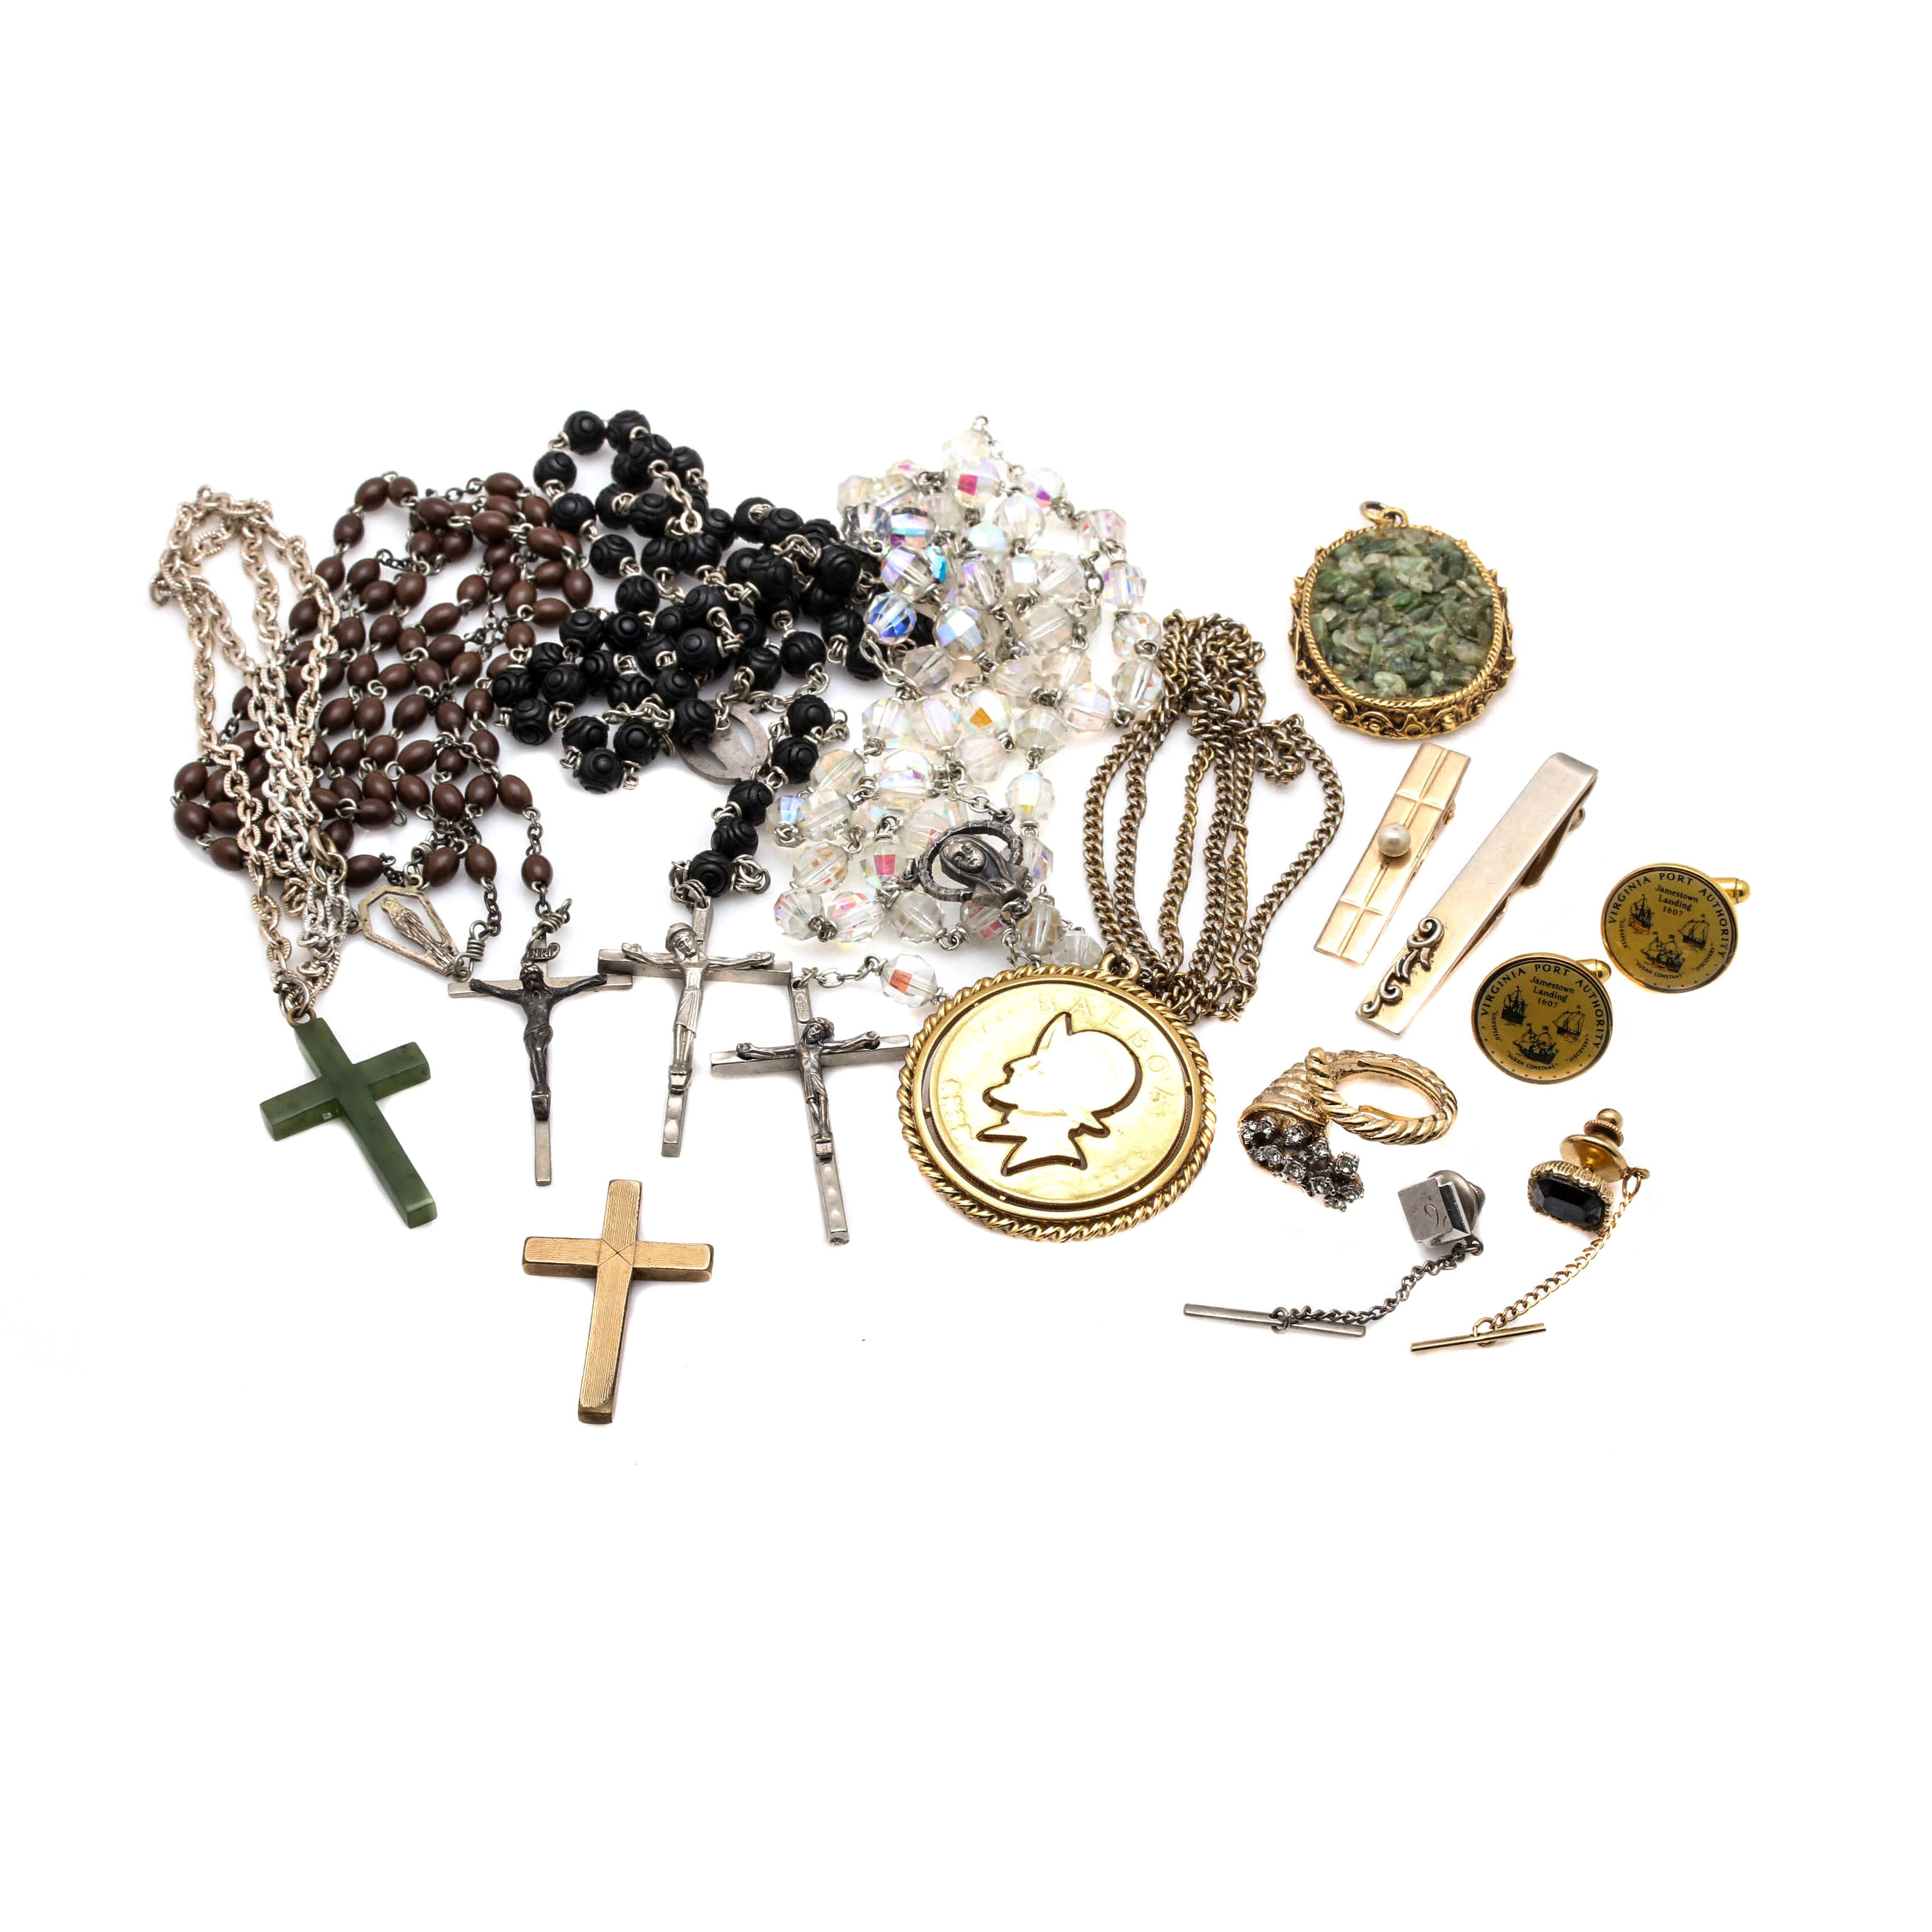 Collection of Jewelry Including Rosaries